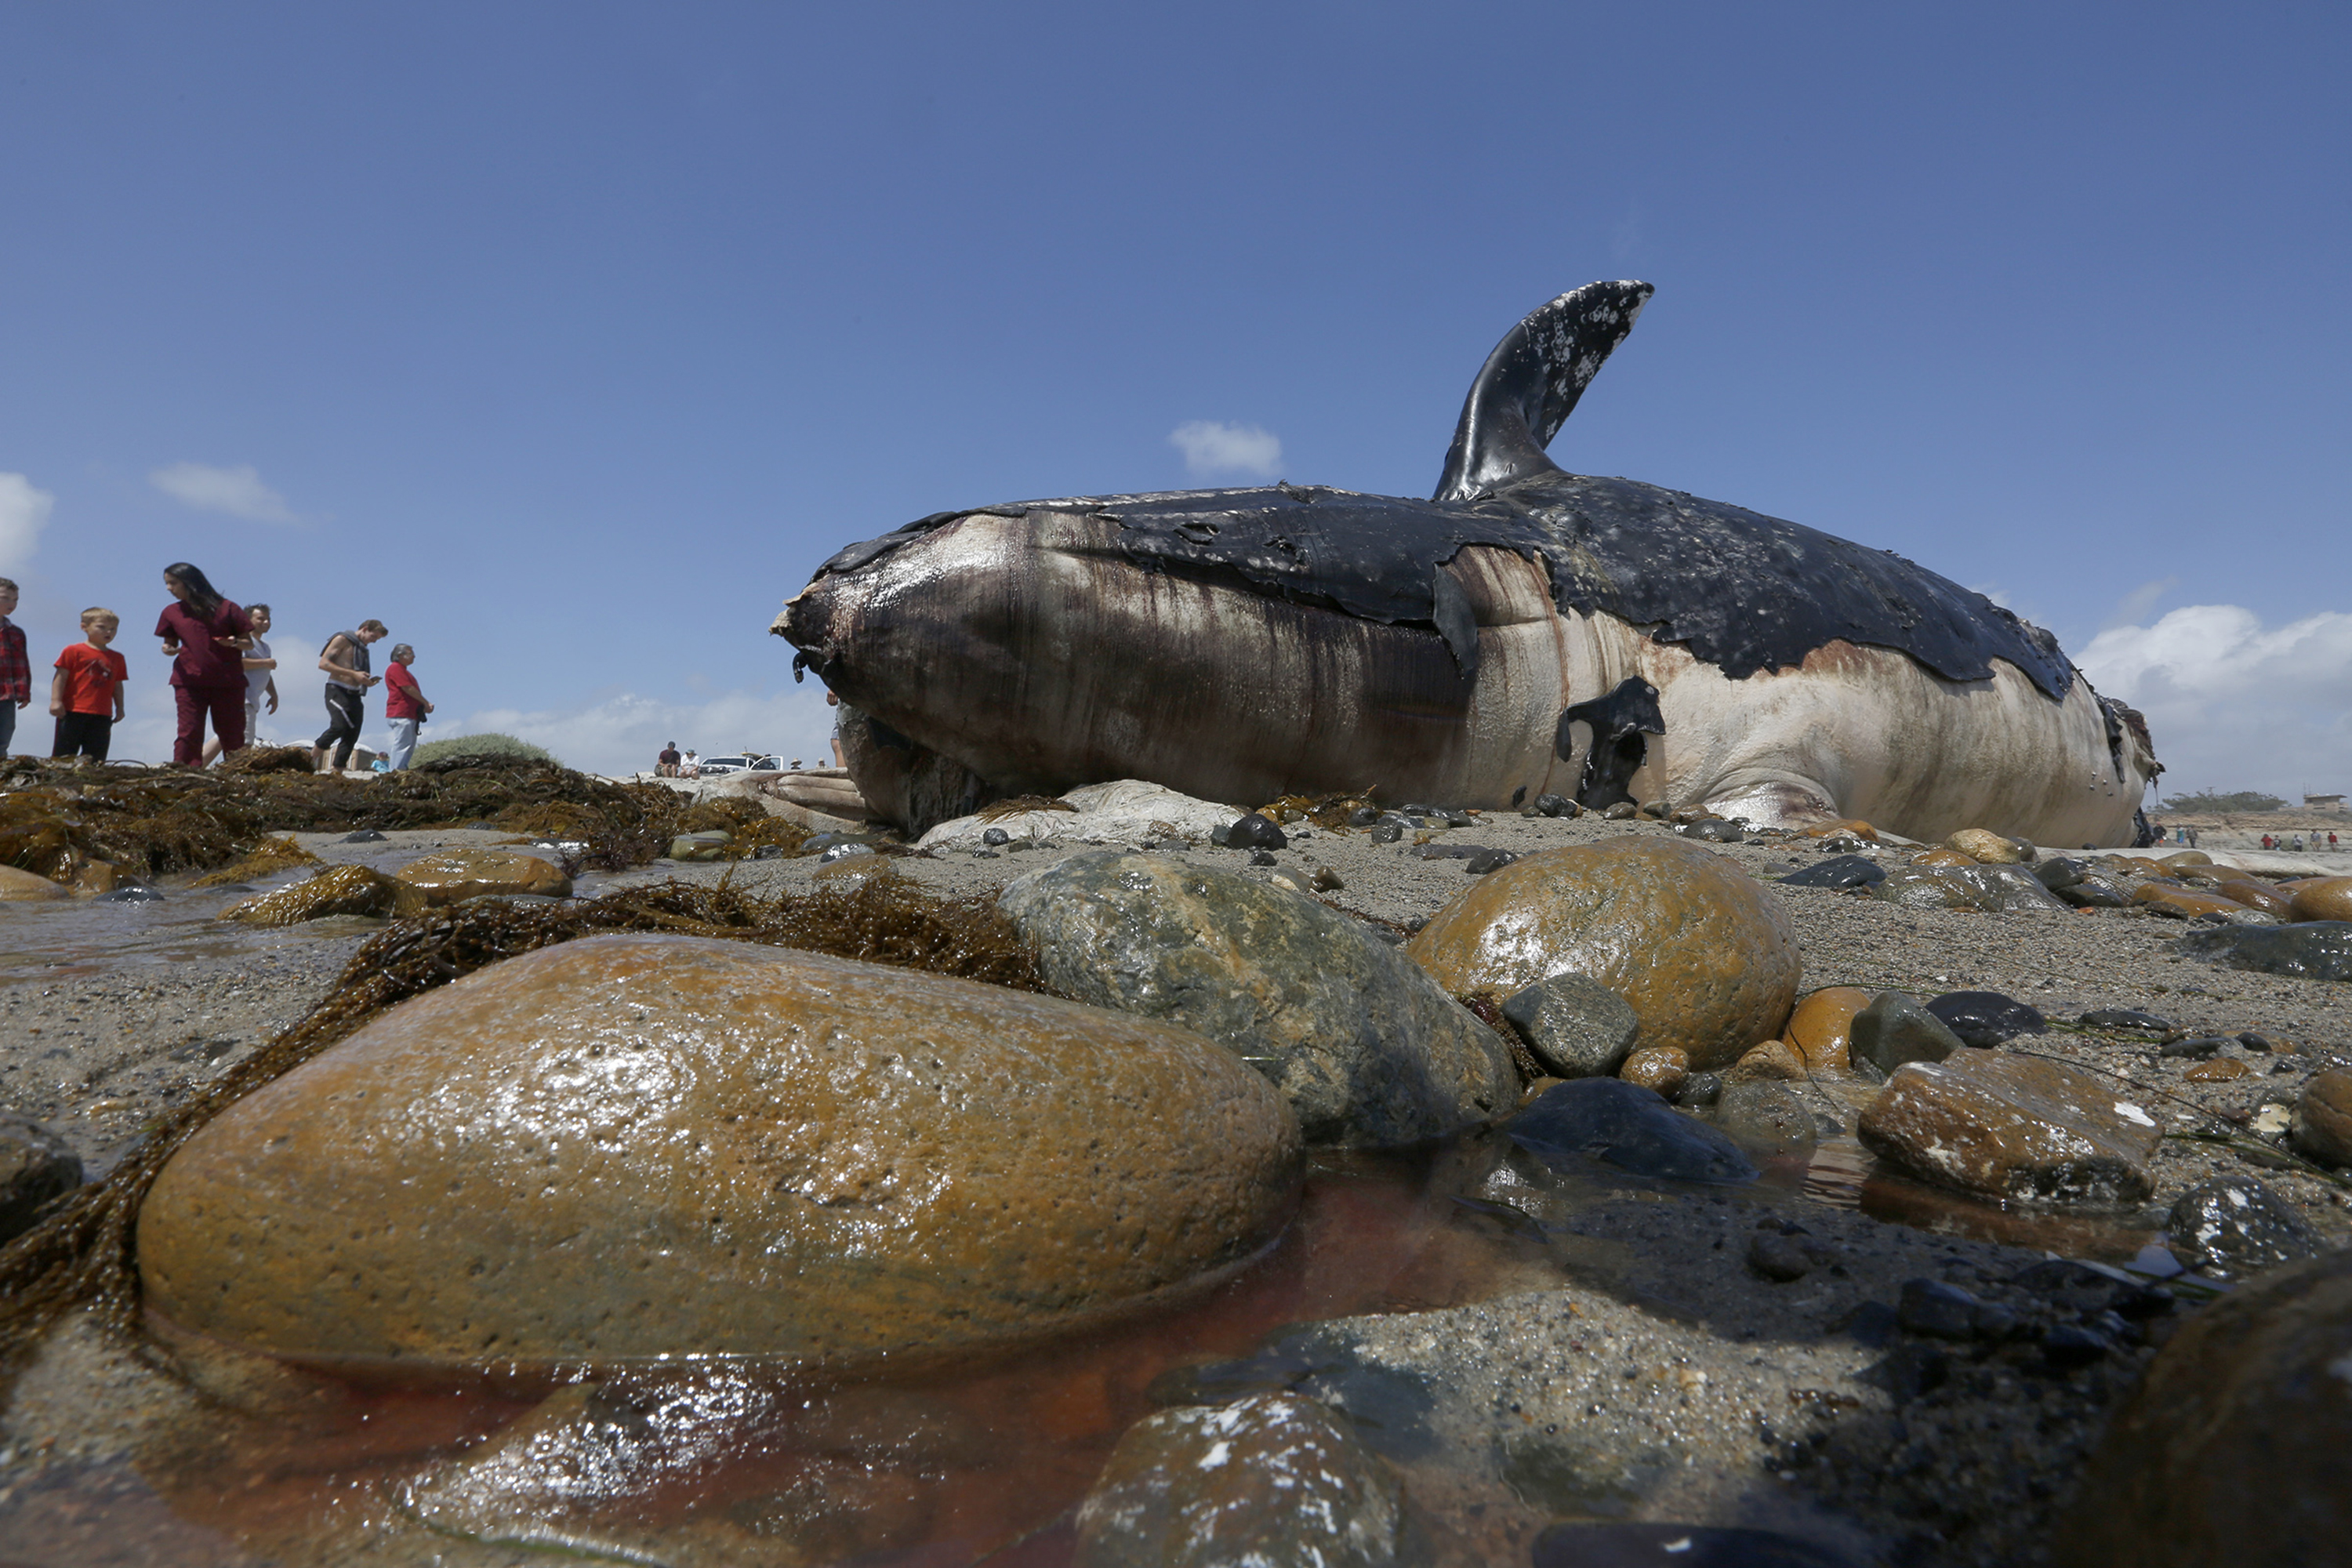 Whale carcass that washed ashore on California beach to be cut up and trucked away